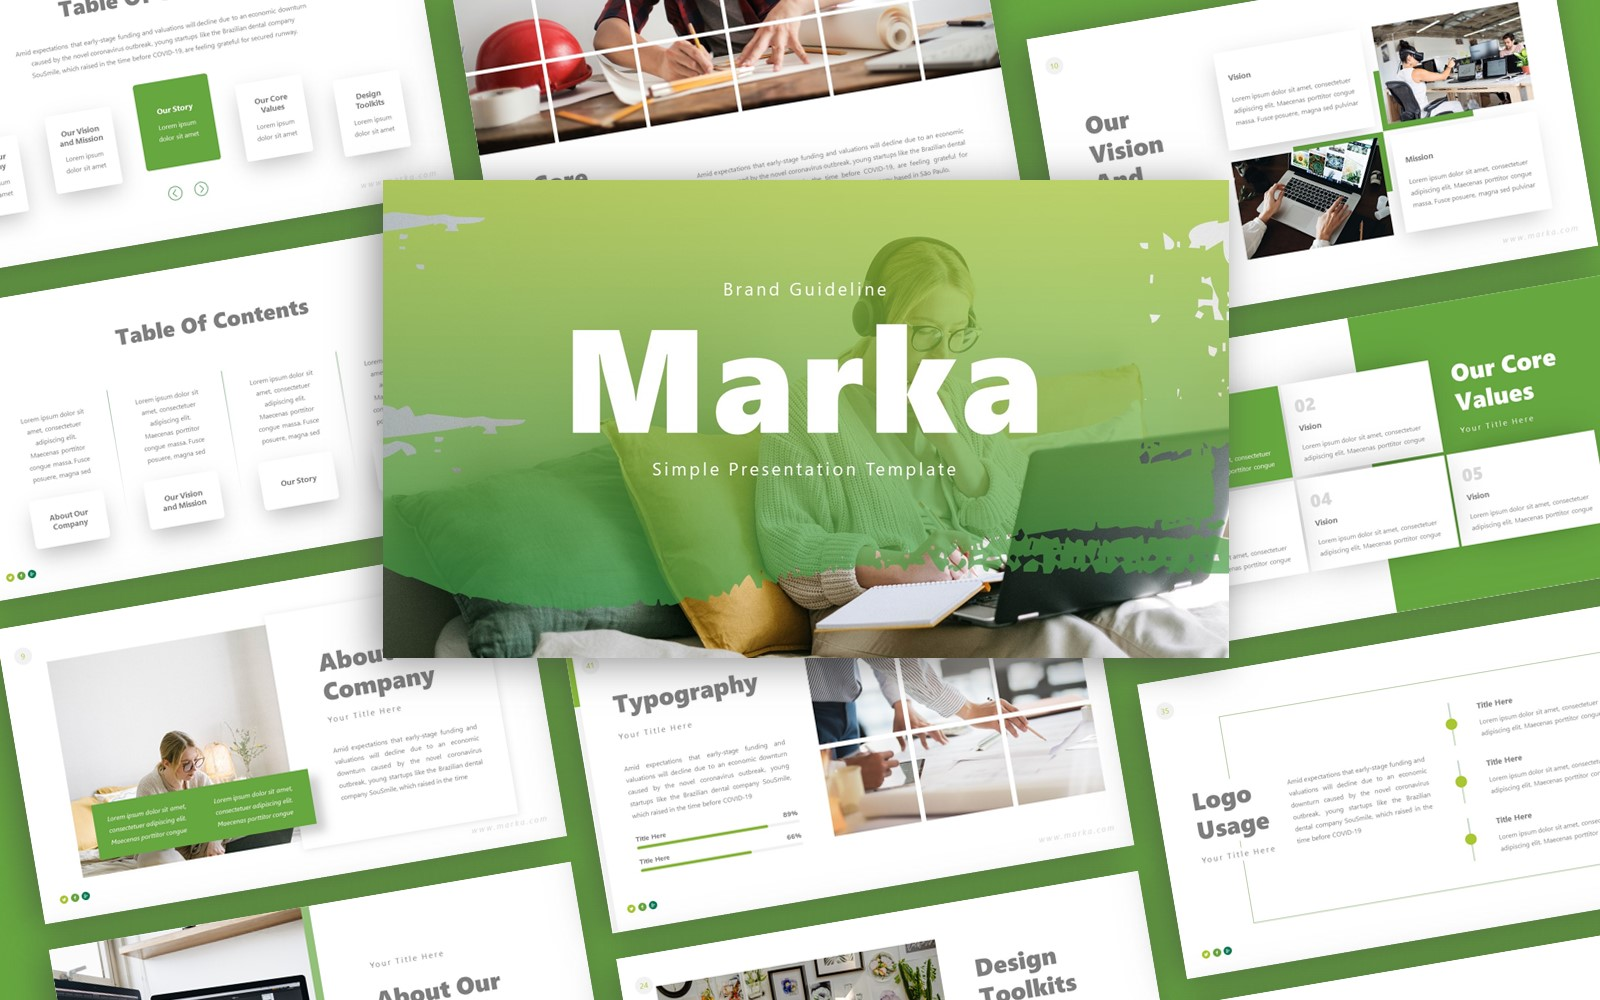 Marka Brand Guideline Presentation PowerPoint Template